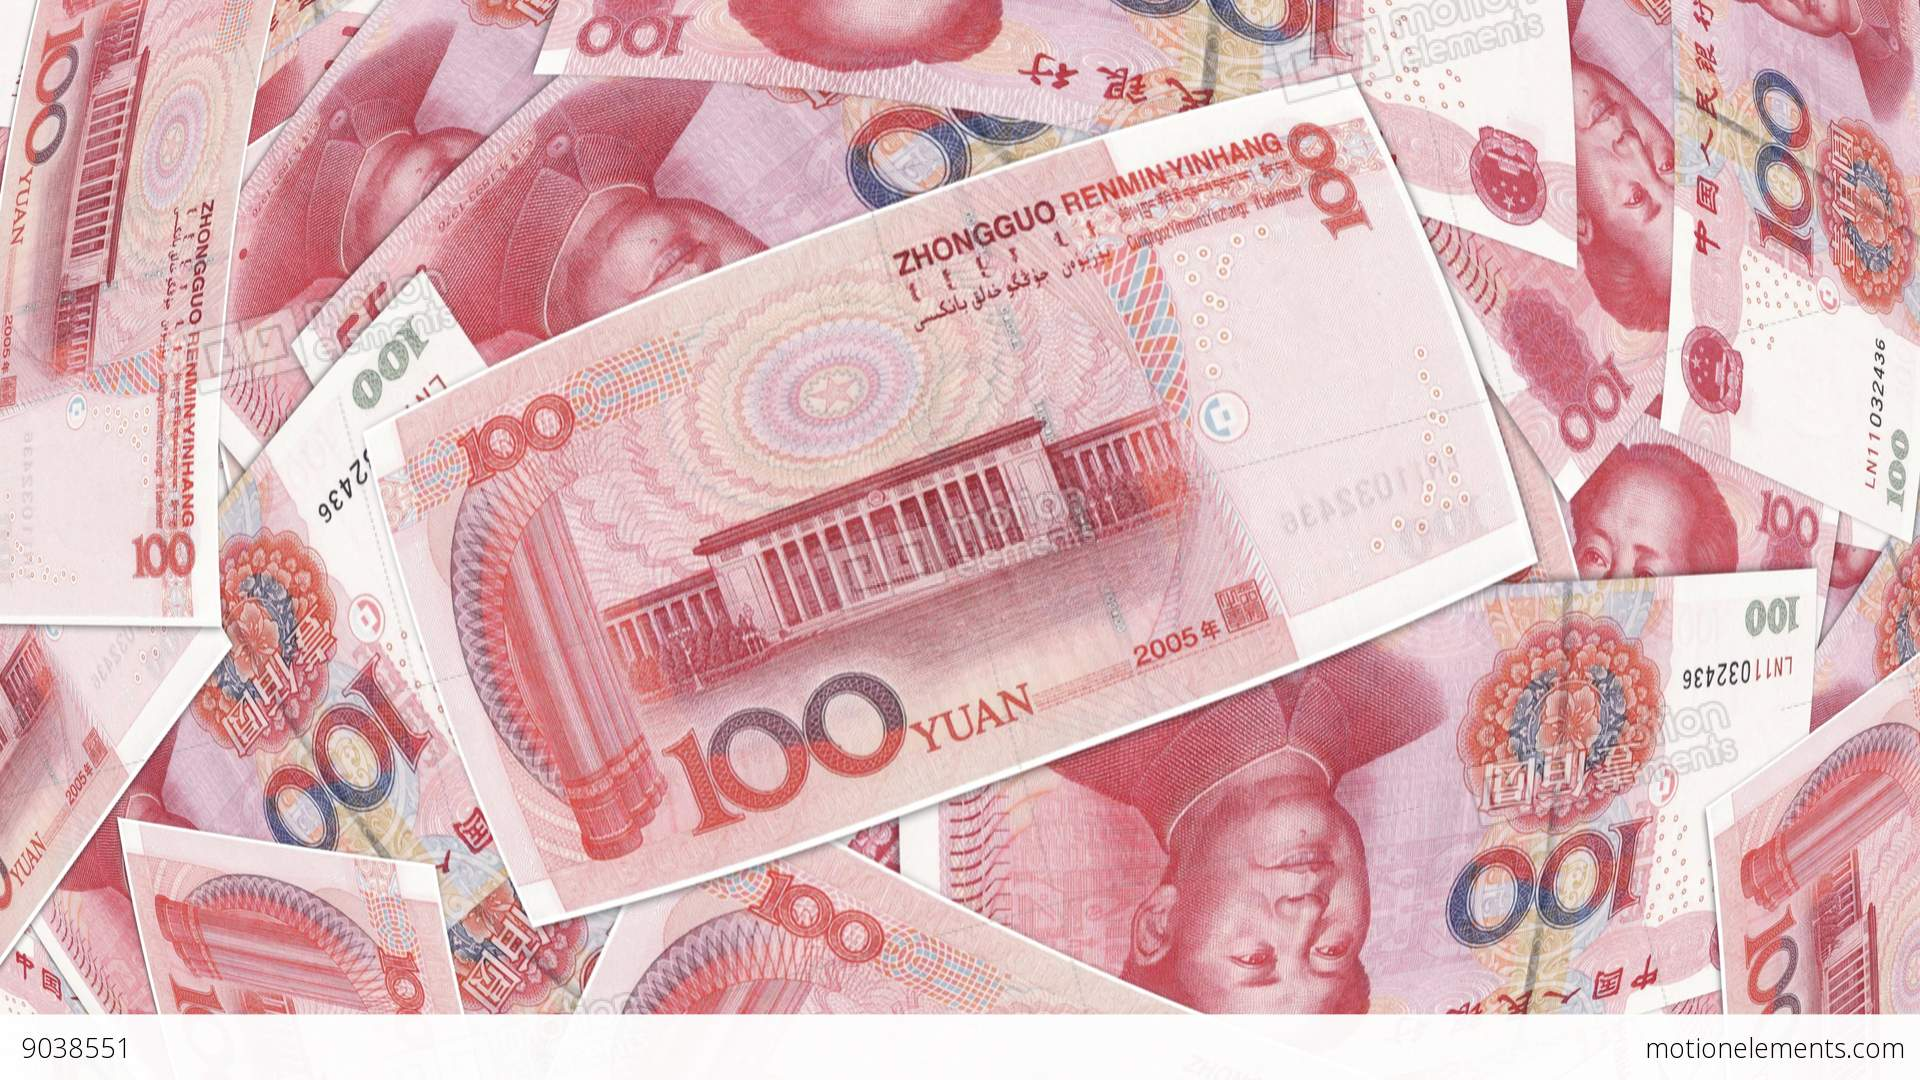 Bank Renminbi Rmb Yuan Chinese Money Banknote Stock Video Footage